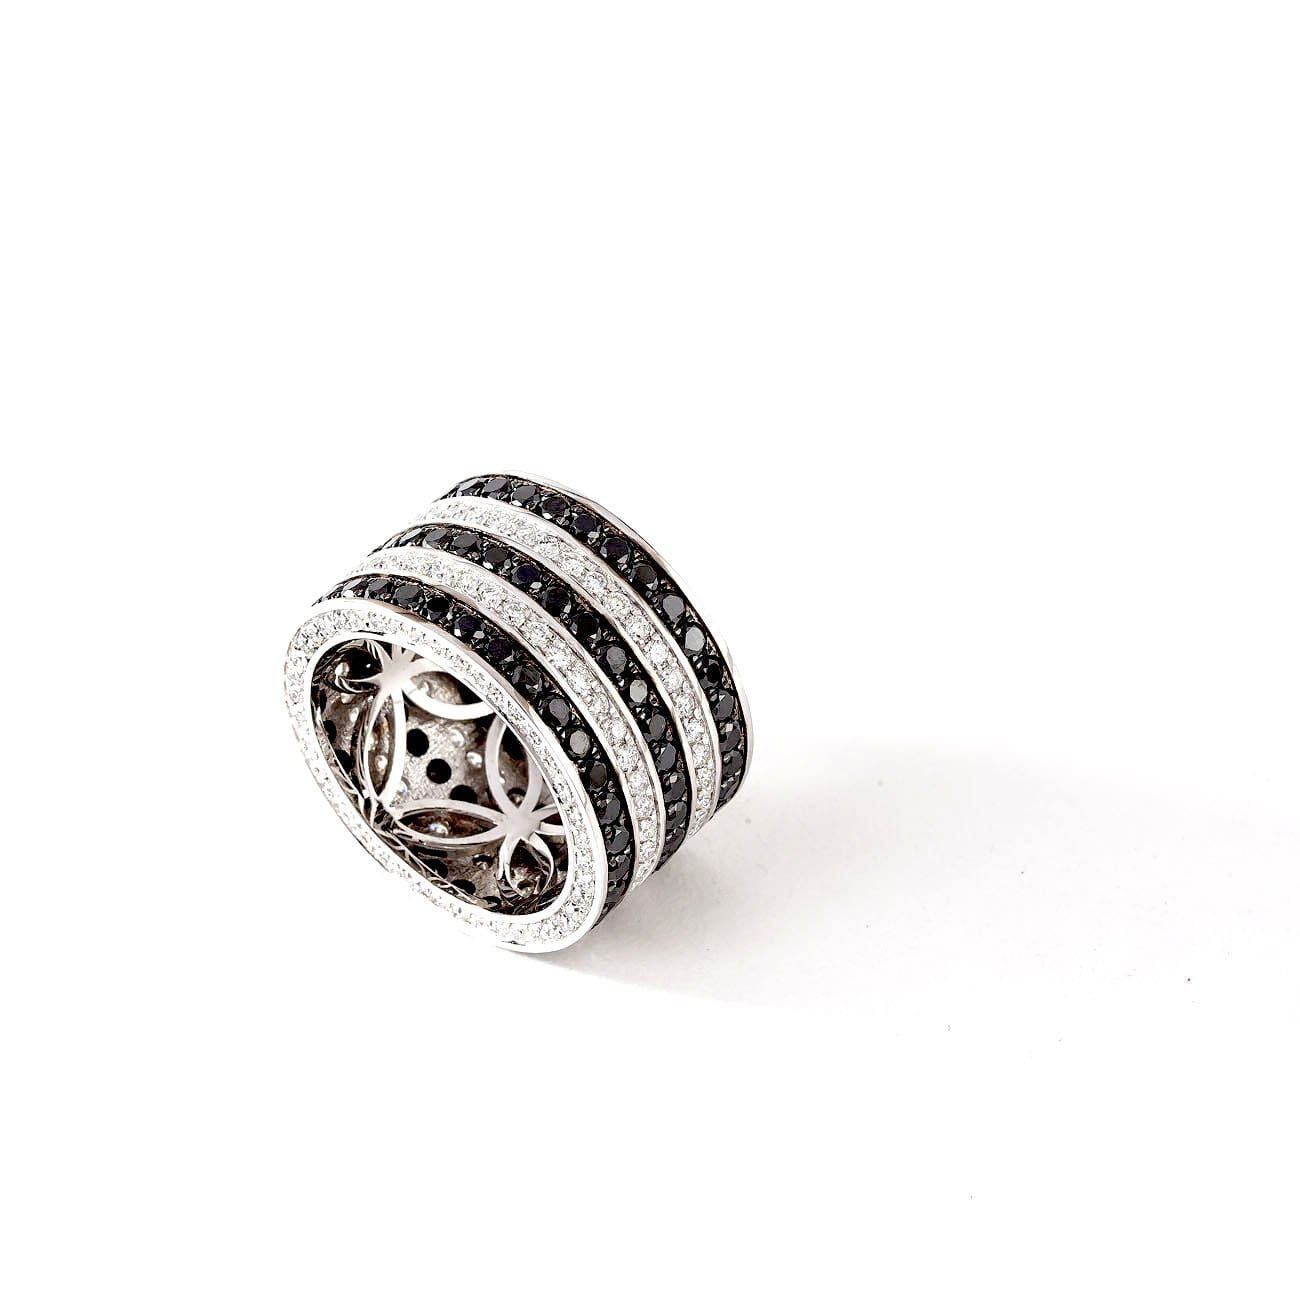 BLACK AND WHITE DIAMOND WEDDING BAND - Chris Aire Fine Jewelry & Timepieces